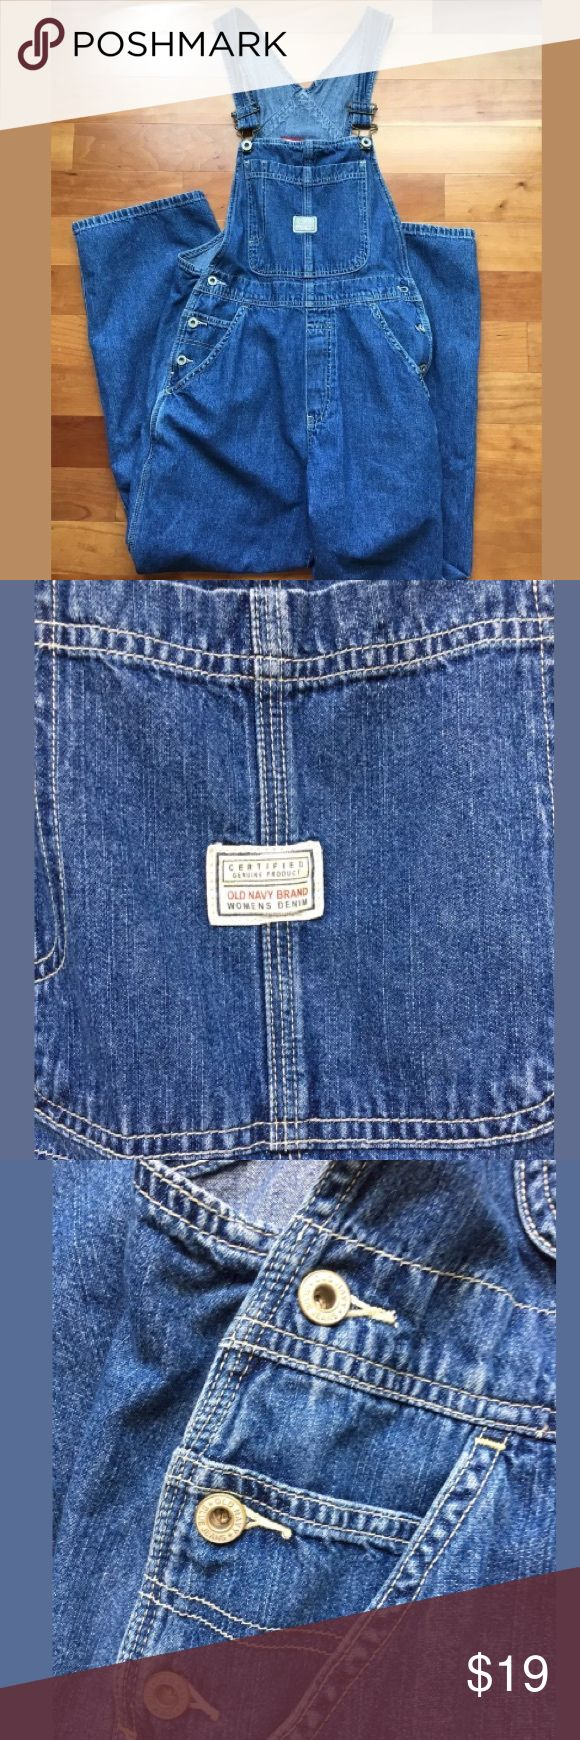 """Old navy overalls Women's XS Cute Old navy Denim overalls Women's XS. Measurements are flat Length from shoulder to shoulder 11"""" Waist 14"""" Inseam 27"""" Cotton. Clean. Old Navy Pants Jumpsuits & Rompers"""